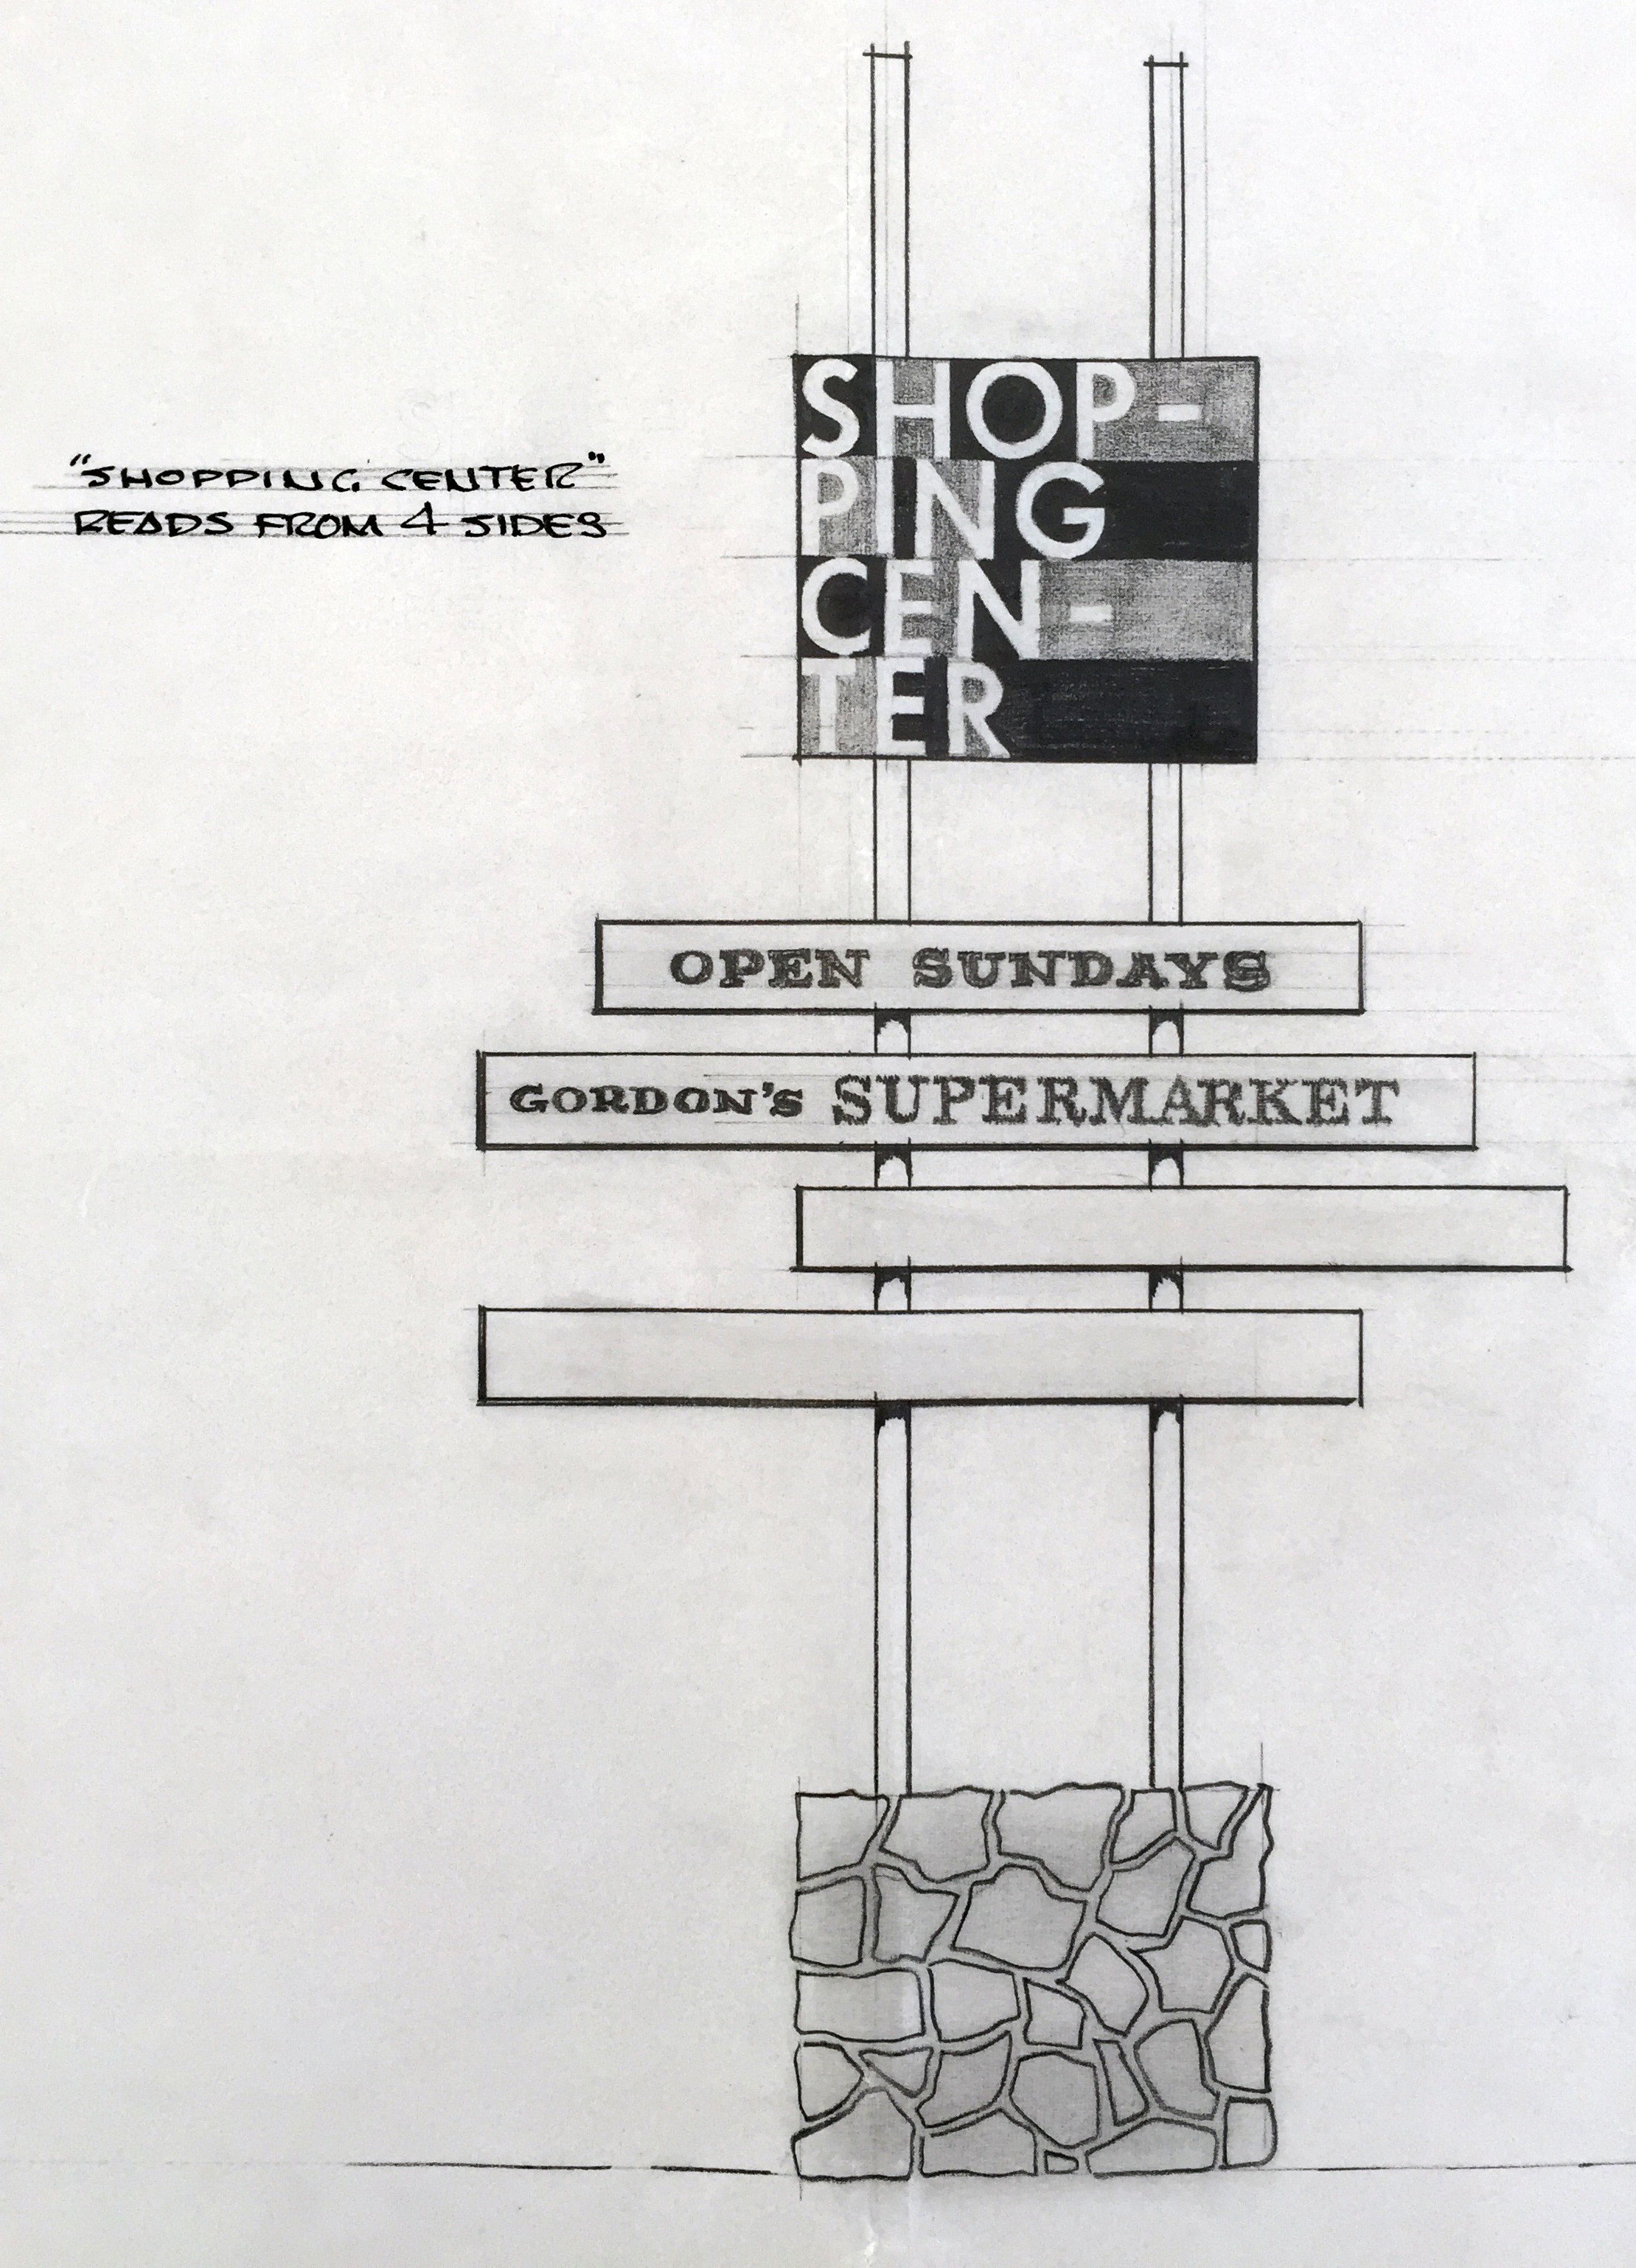 Smith and Williams, Architects and Engineers. Shopping Center Sign, California City. 1966. Architecture and Design Collection, University Art Museum, UCSB.